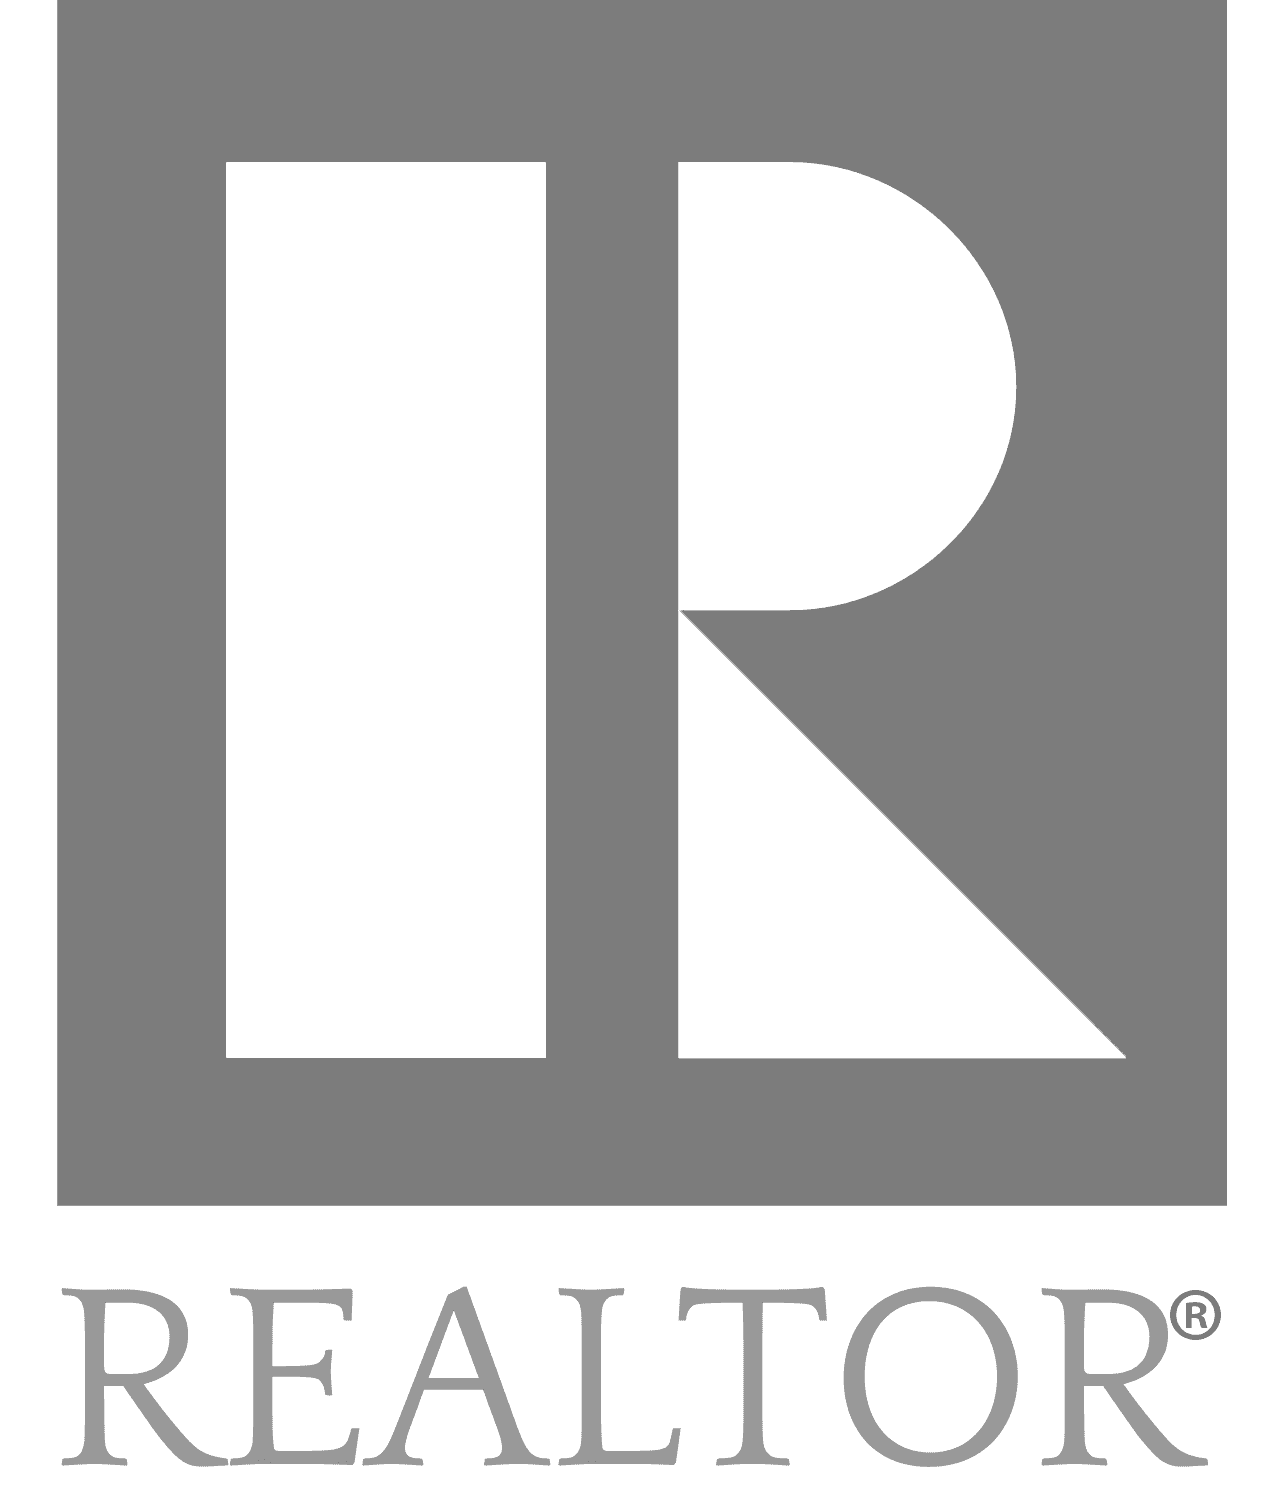 realtor-logo-transparent-background-8.png